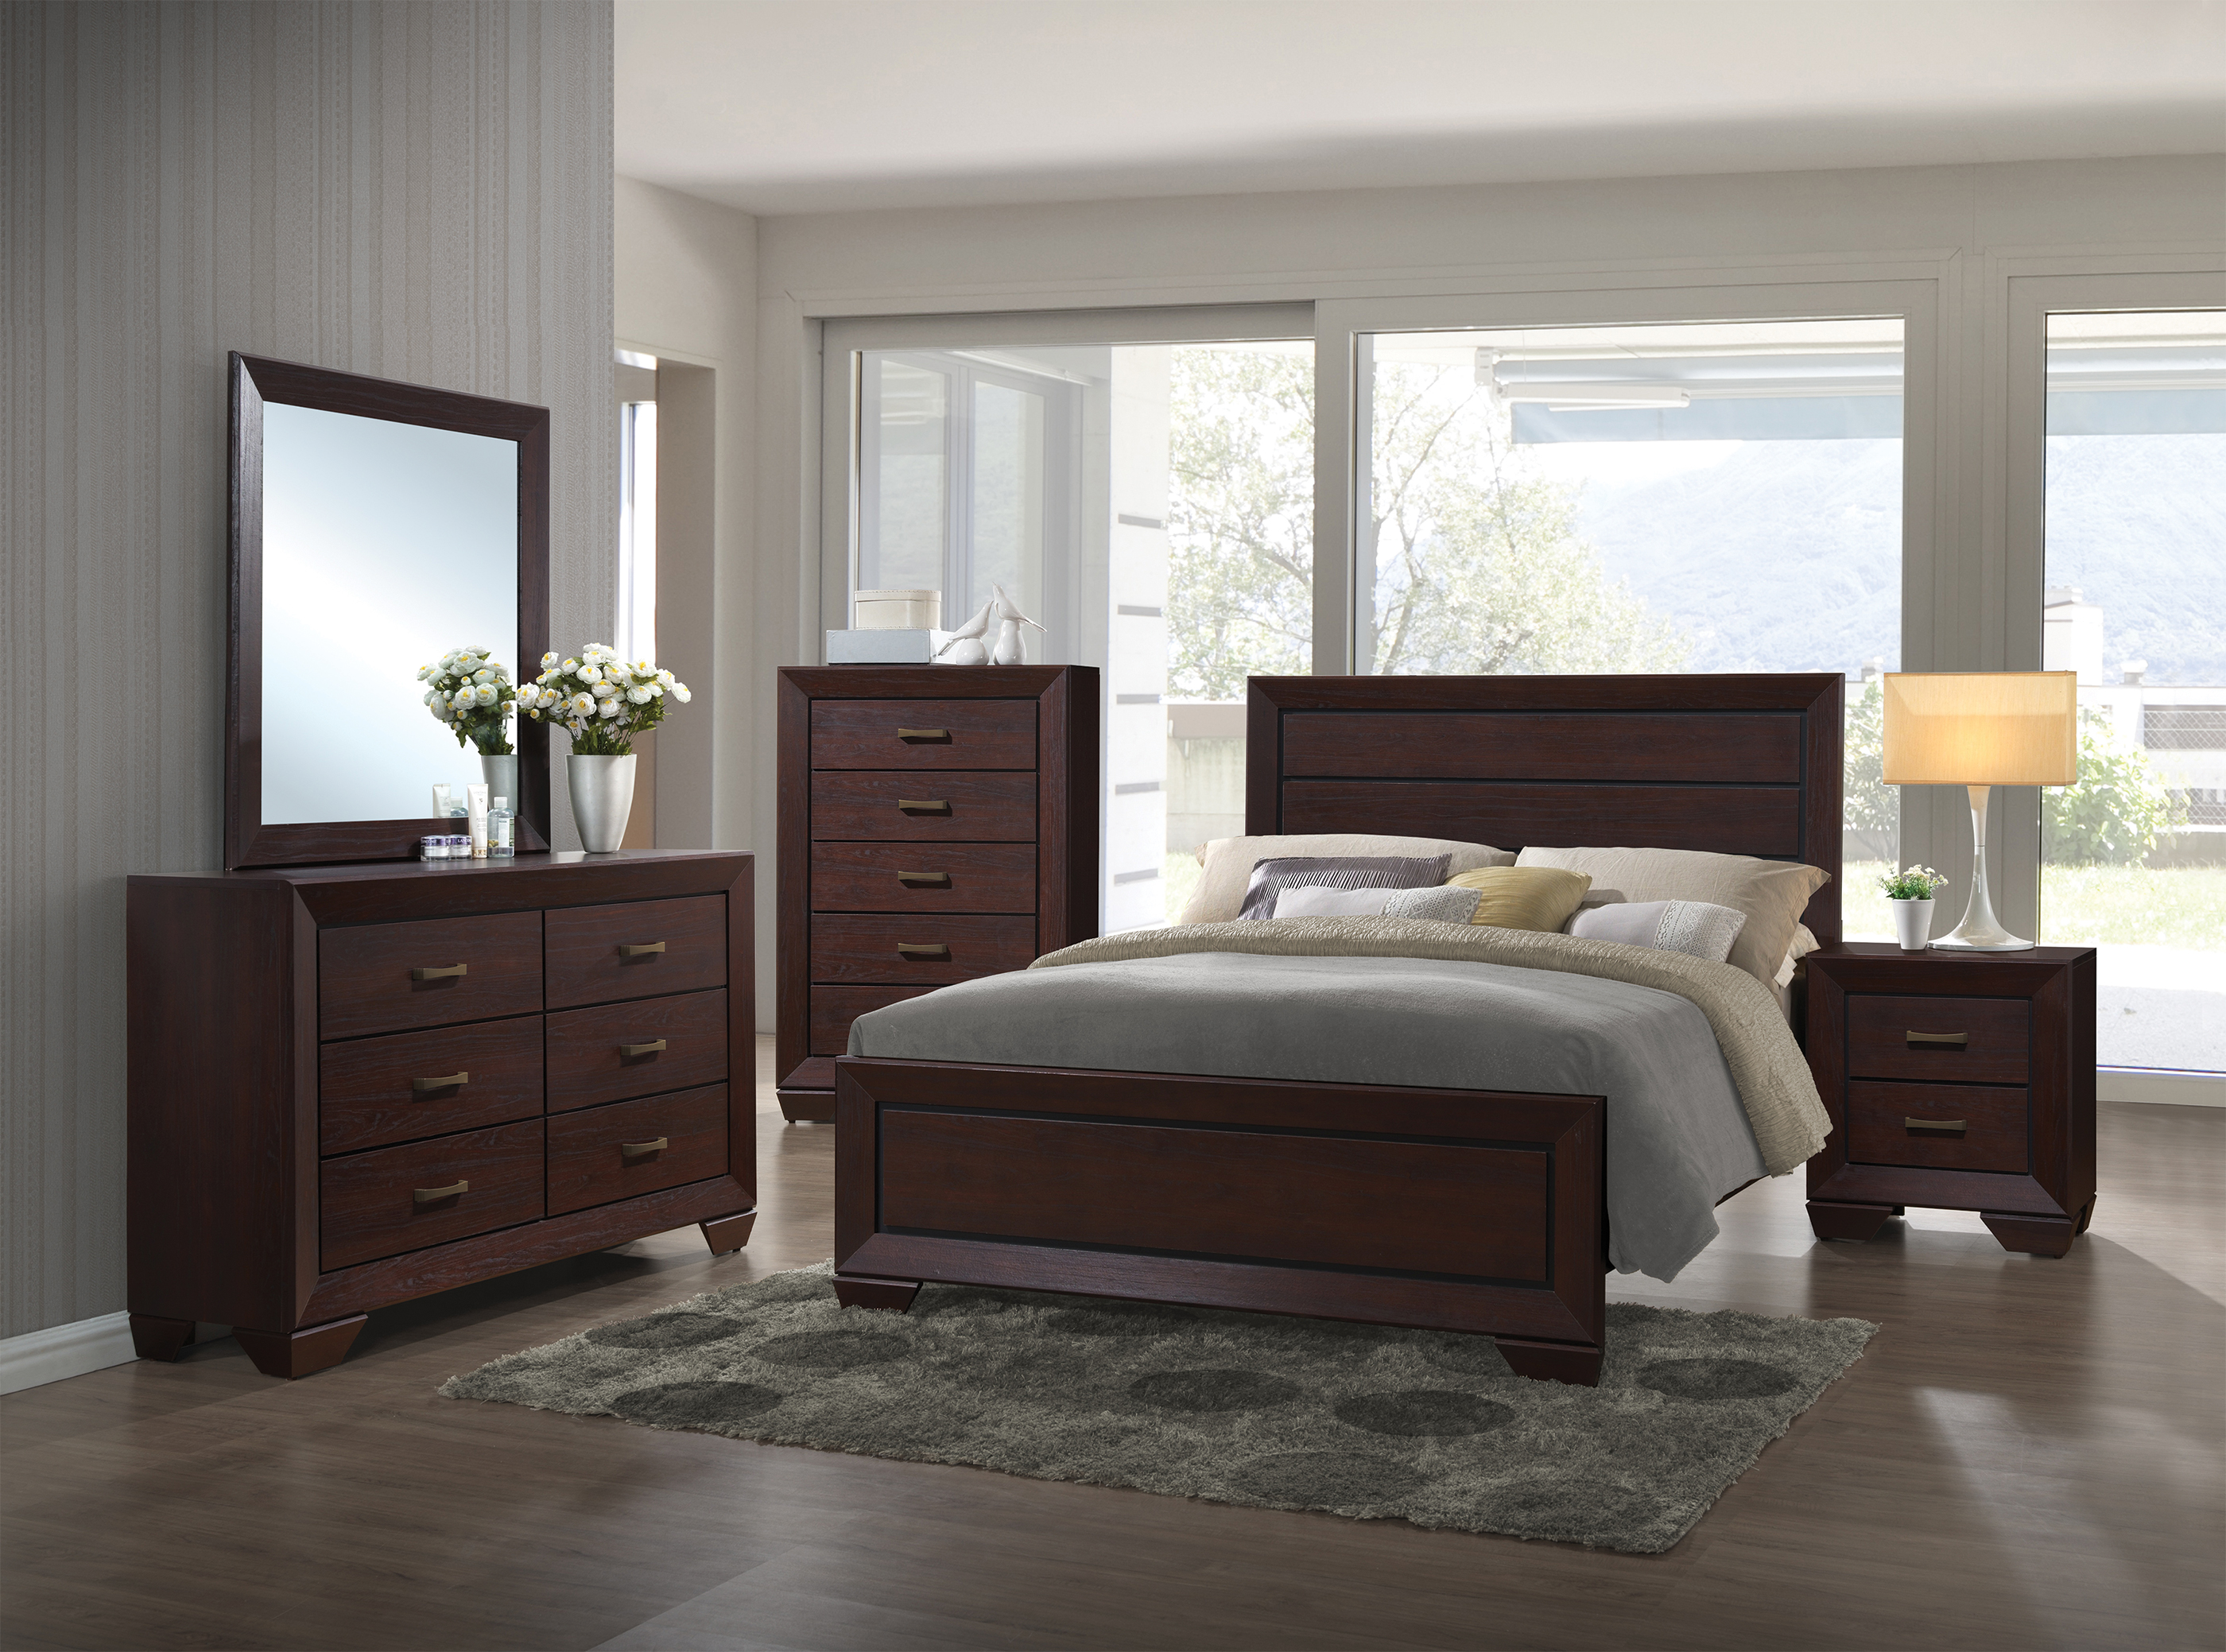 wayside queen s emily mark transitional captain bed bedroom with beds bookcase item bcp furniture headboard collections crown